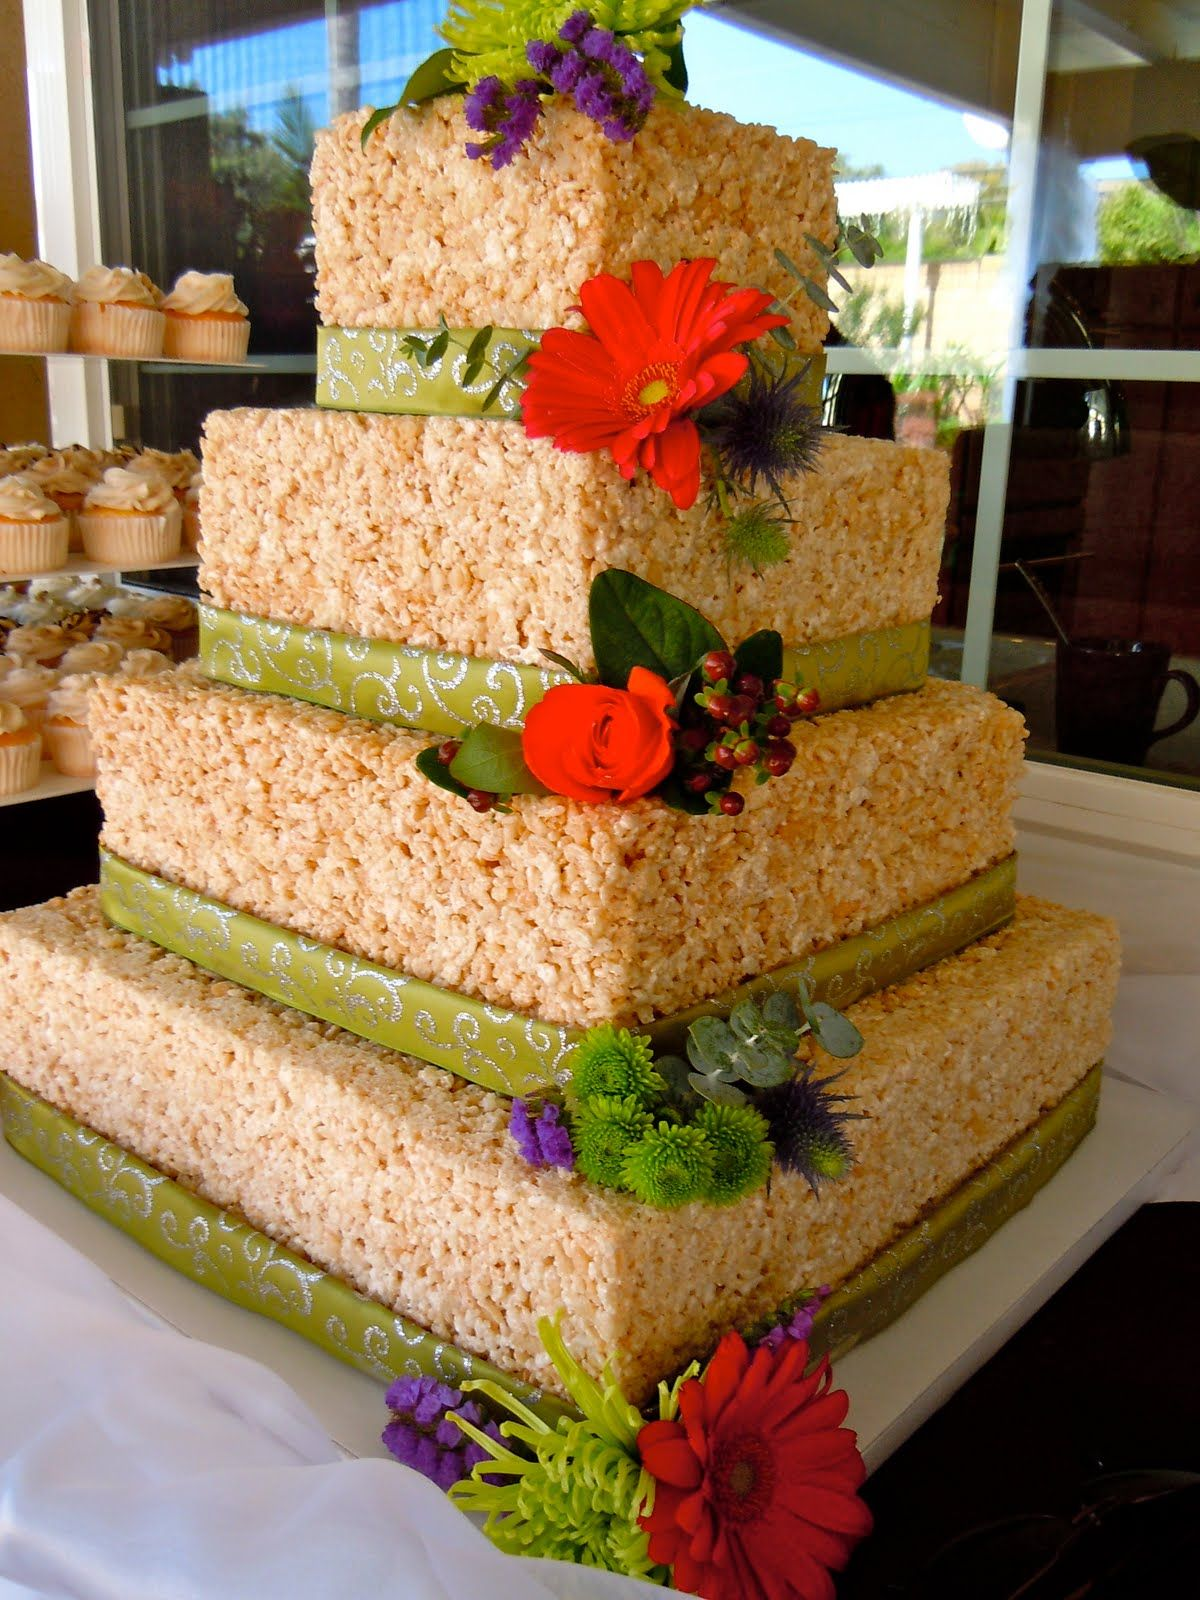 Perfect How To Make Your Own Rice Crispy Wedding Cake! Love This!